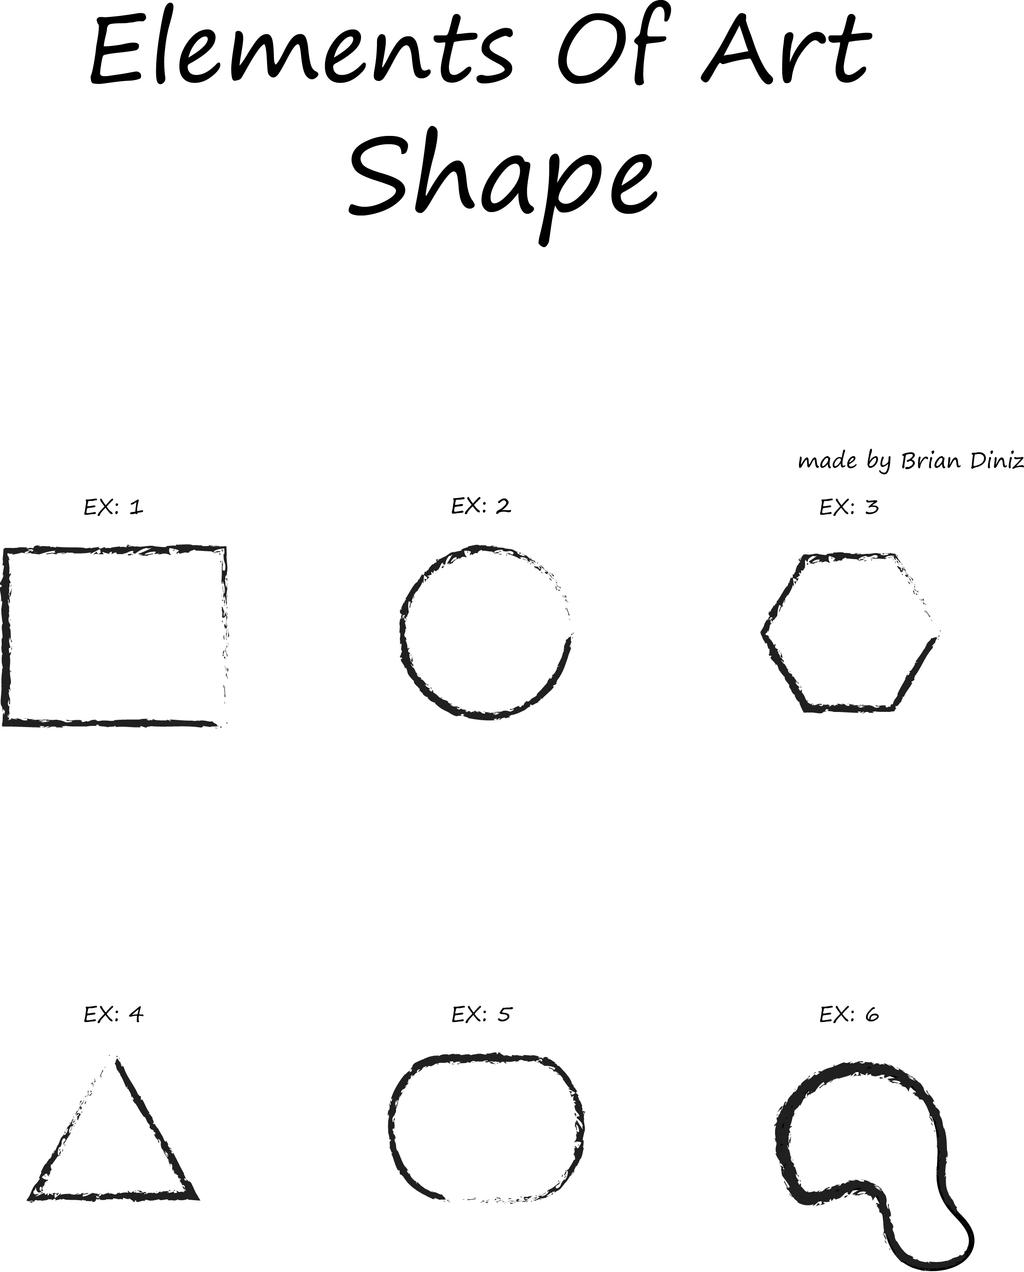 Shape As An Element Of Art : Elements of art shape by briandnz on deviantart